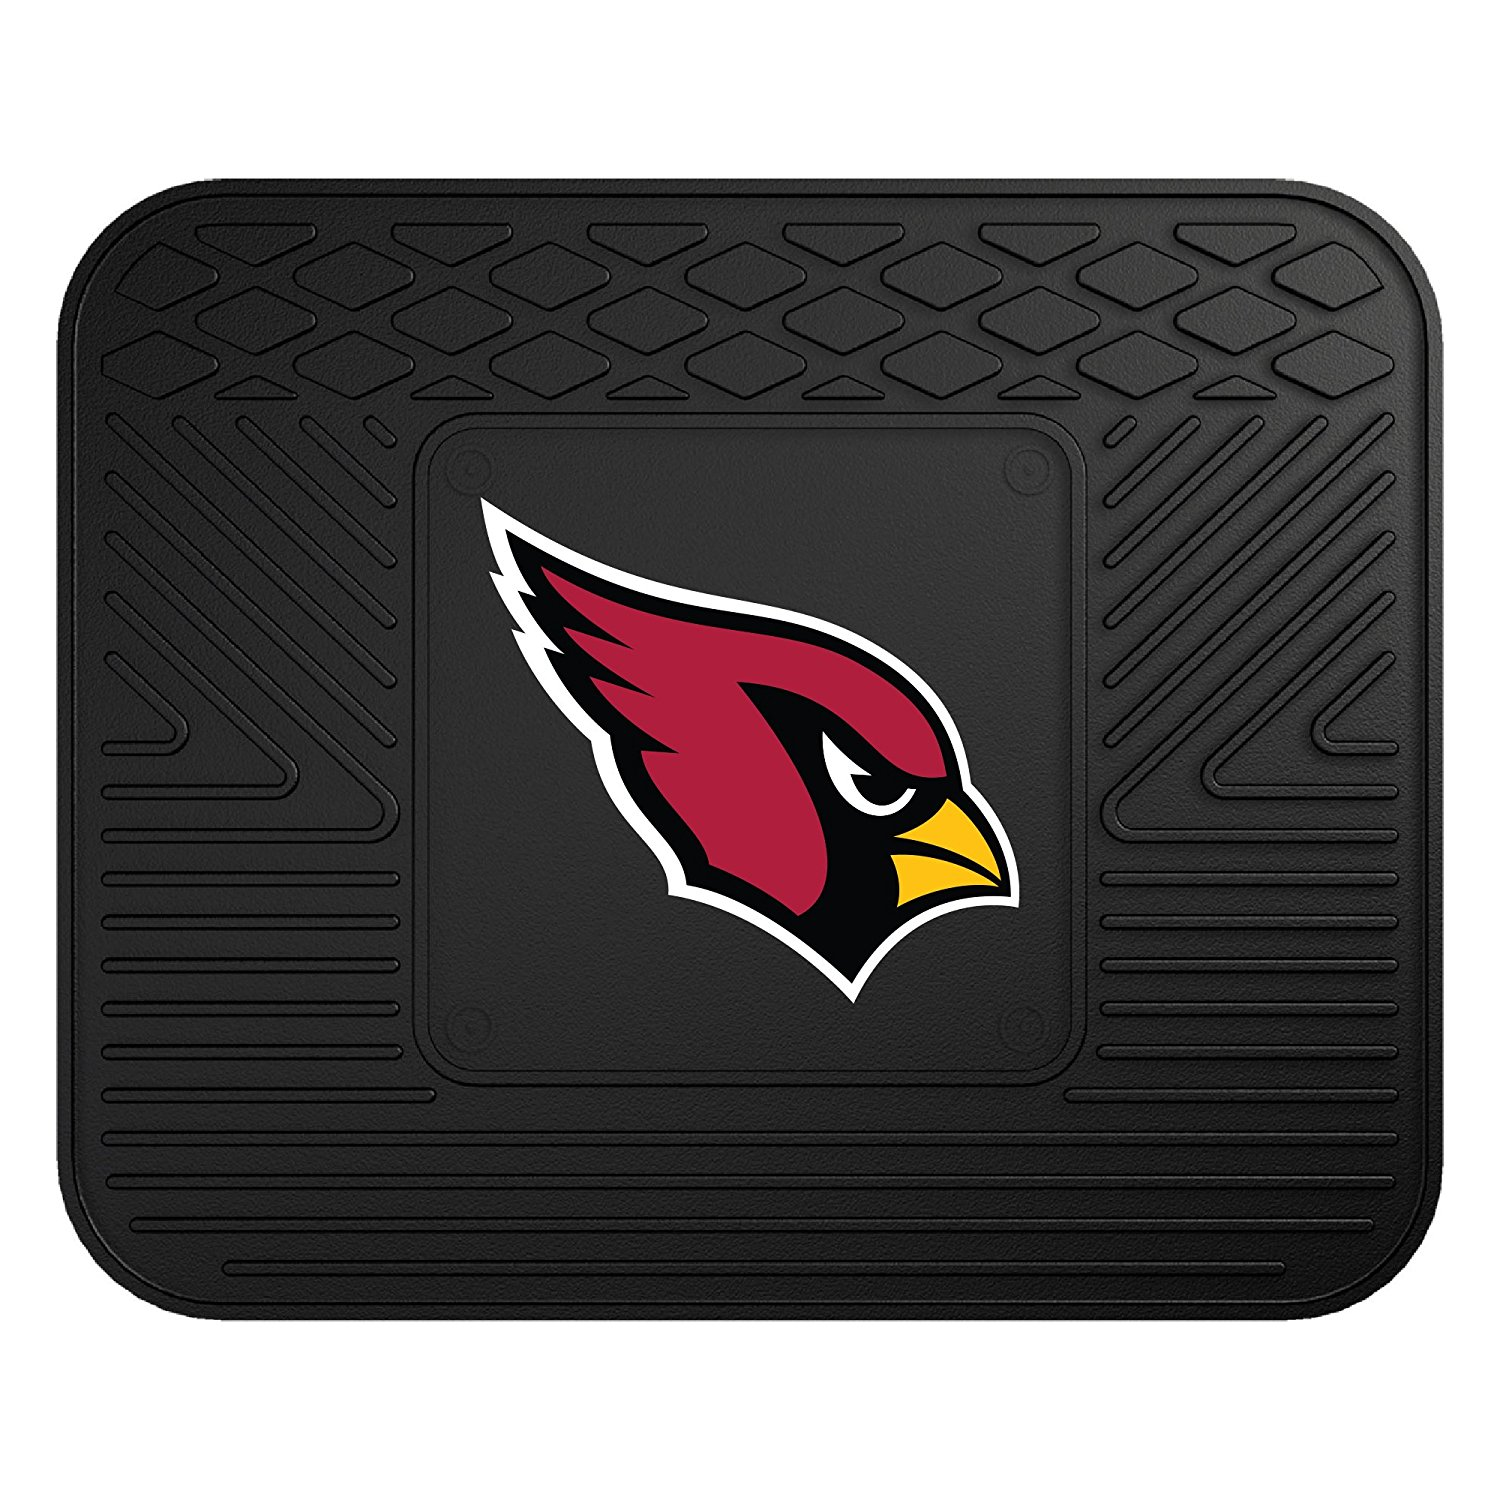 NFL Arizona Cardinals Vinyl Heavy Duty Car Mat, Universal size to fit all vehicle sizes By Fanmats